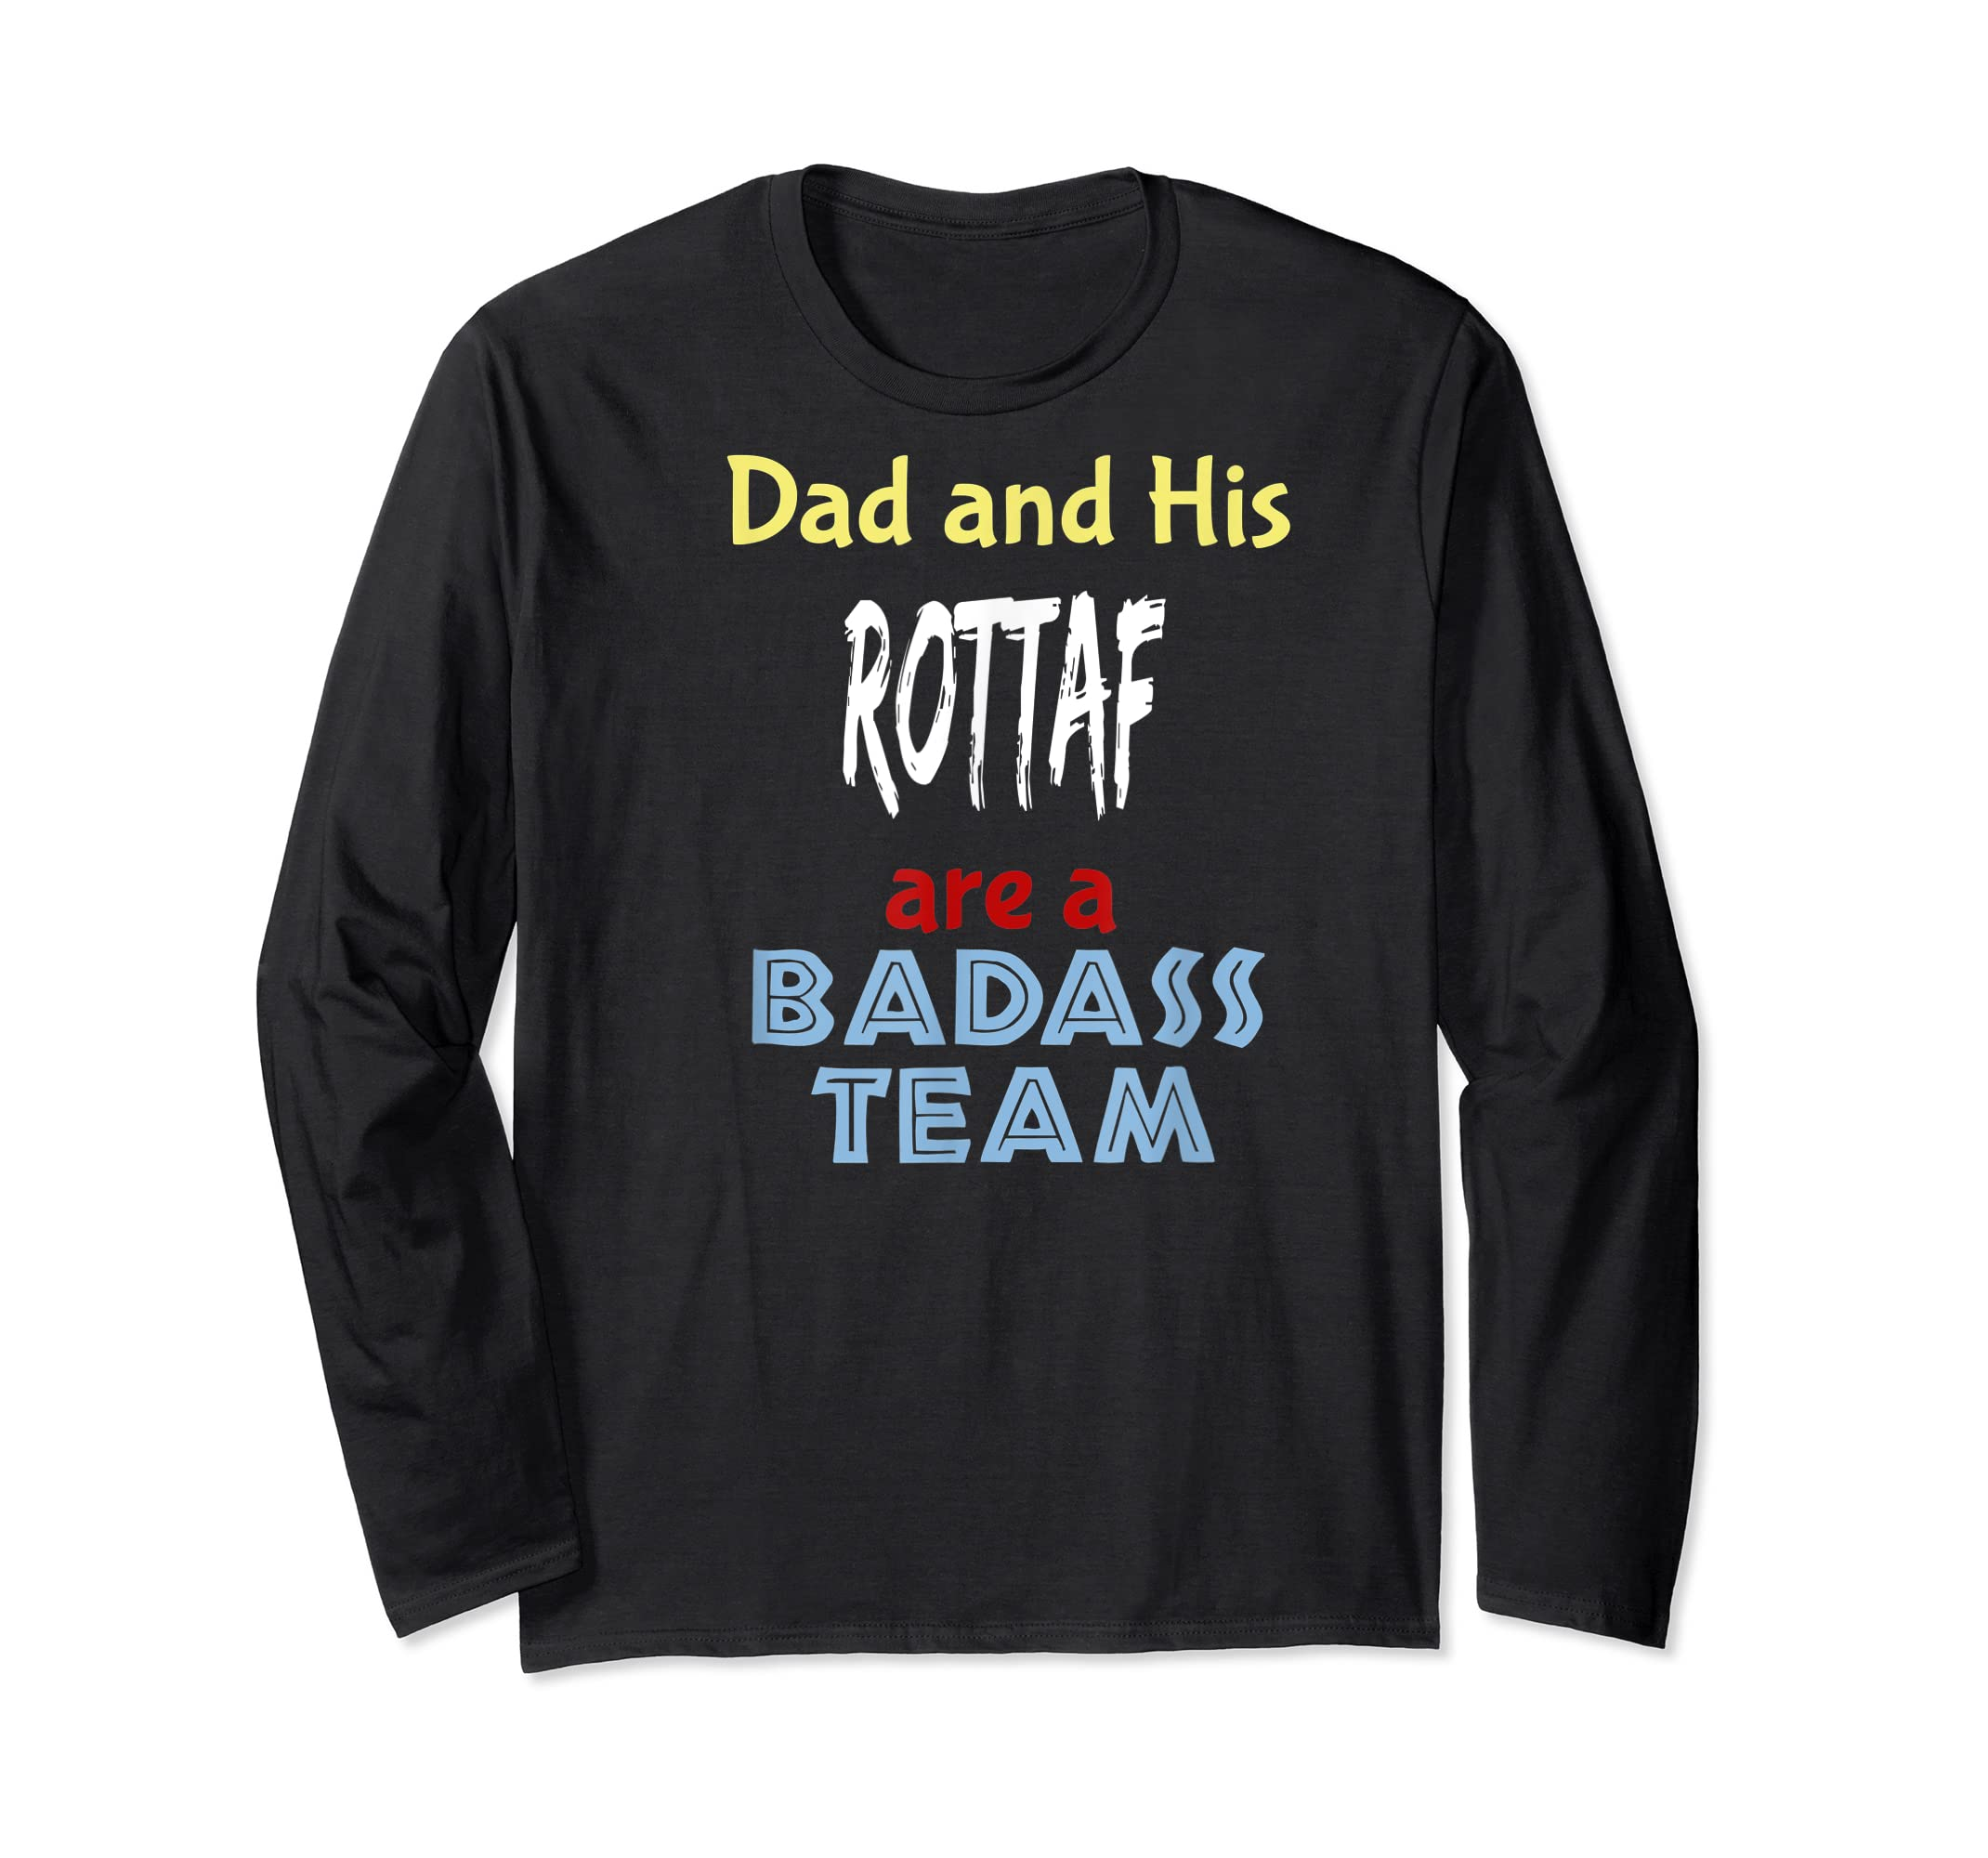 Mens Rottaf Dog Shirt Love Rottweiler + Afghan Hound =  T-Shirt-Long Sleeve-Black